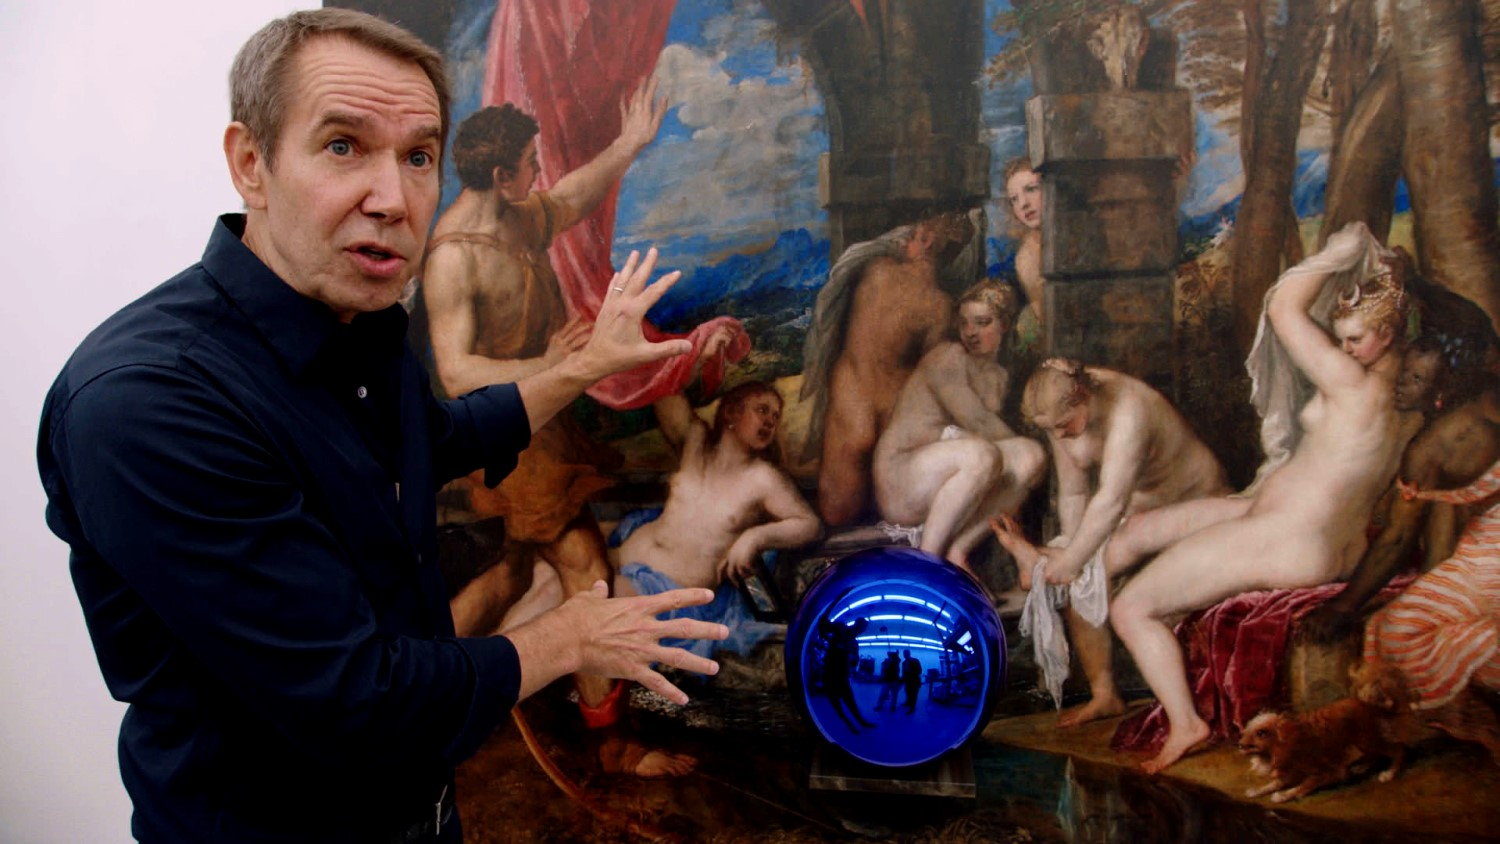 Jeff Koons, whose work rocketed in price from $950,000 to 65 million. The Price of Everything, Image copyright: Dogwoof